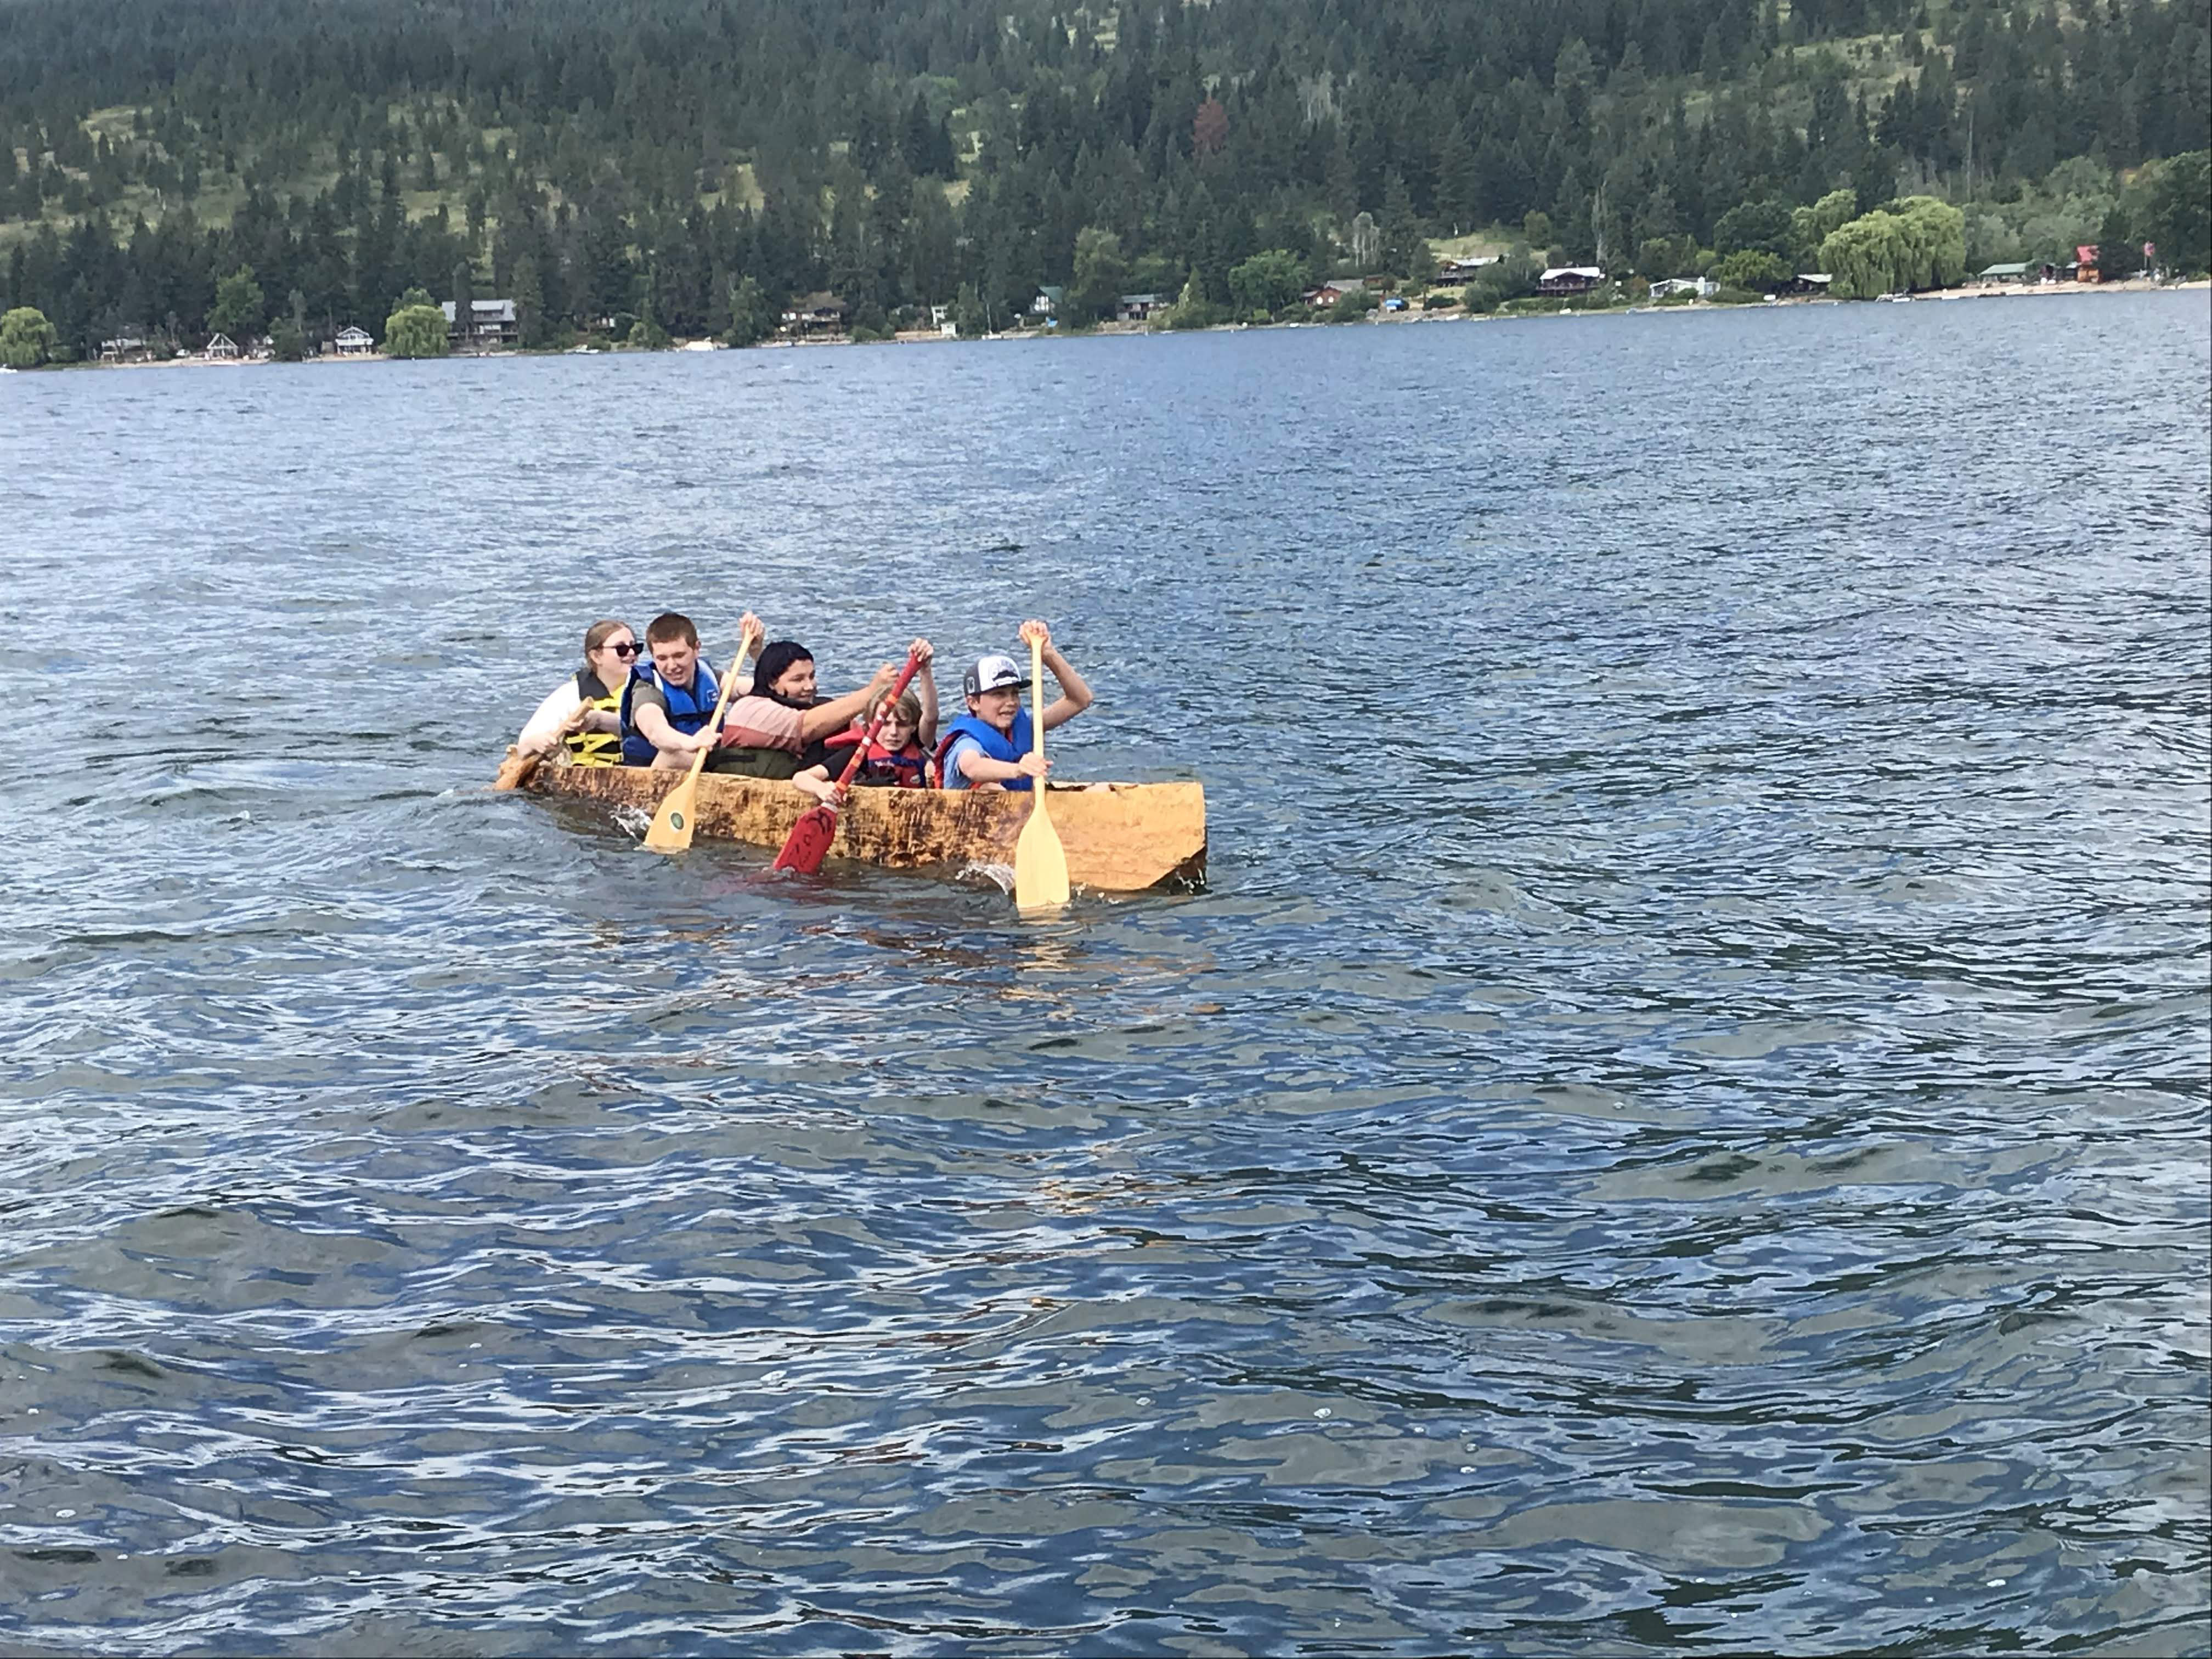 Brock Middle School students in their dugout canoe